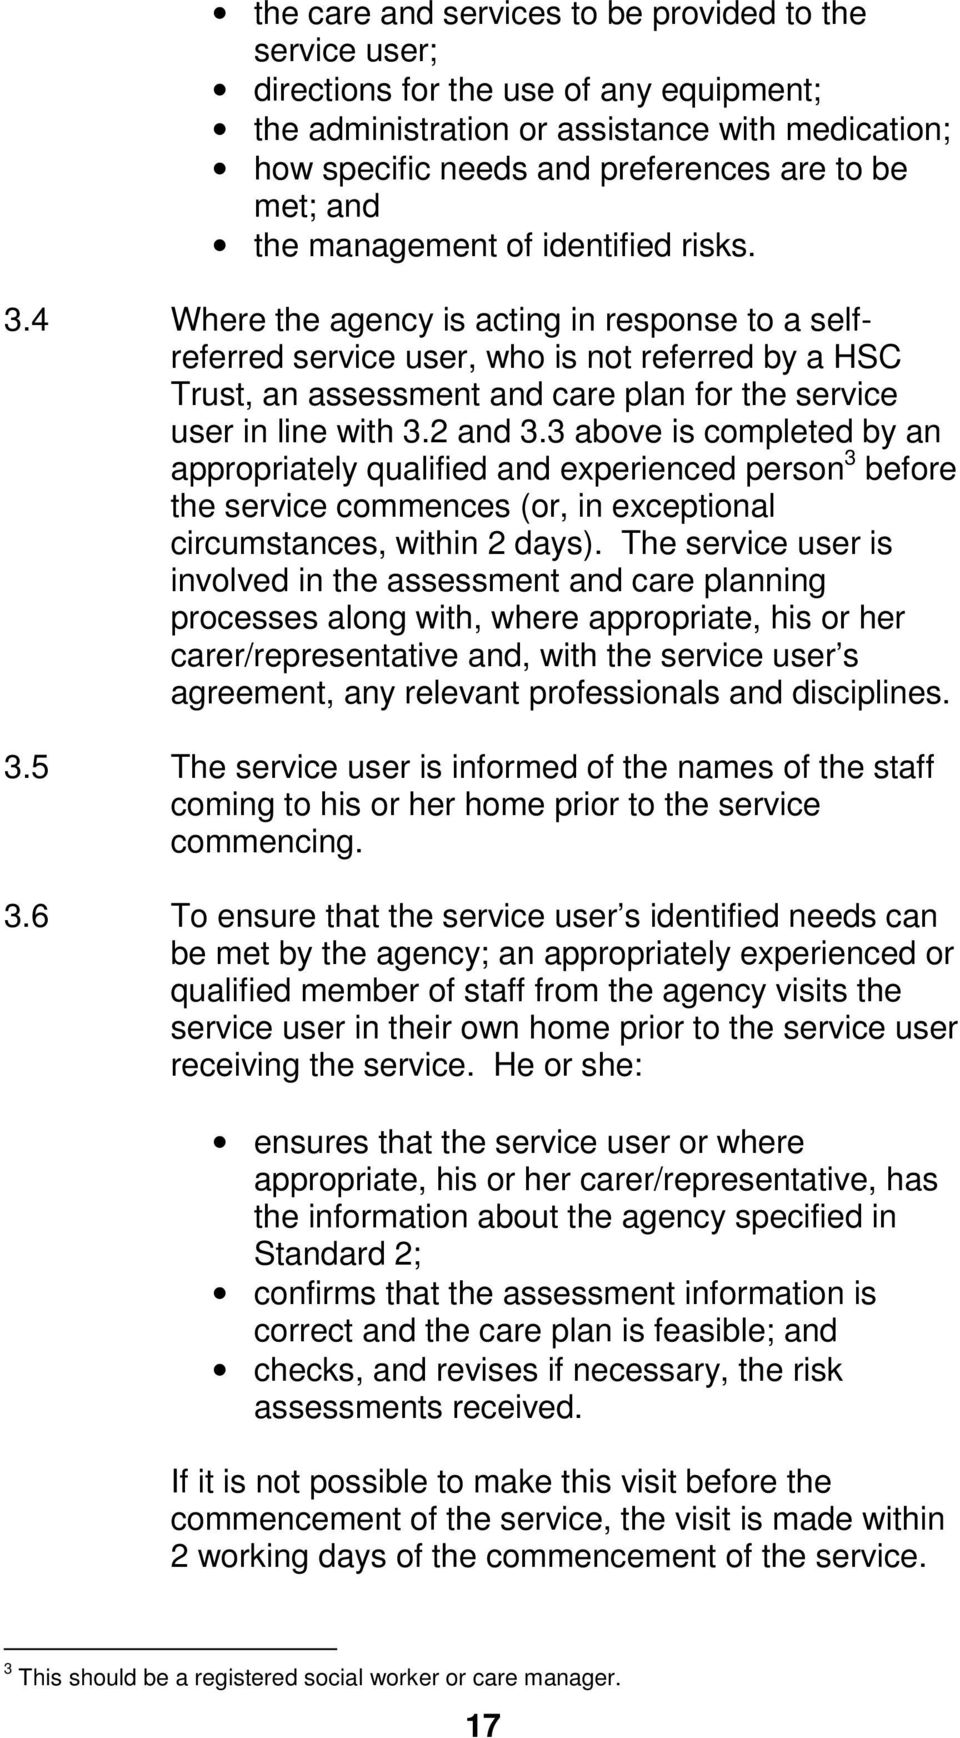 4 Where the agency is acting in response to a selfreferred service user, who is not referred by a HSC Trust, an assessment and care plan for the service user in line with 3.2 and 3.